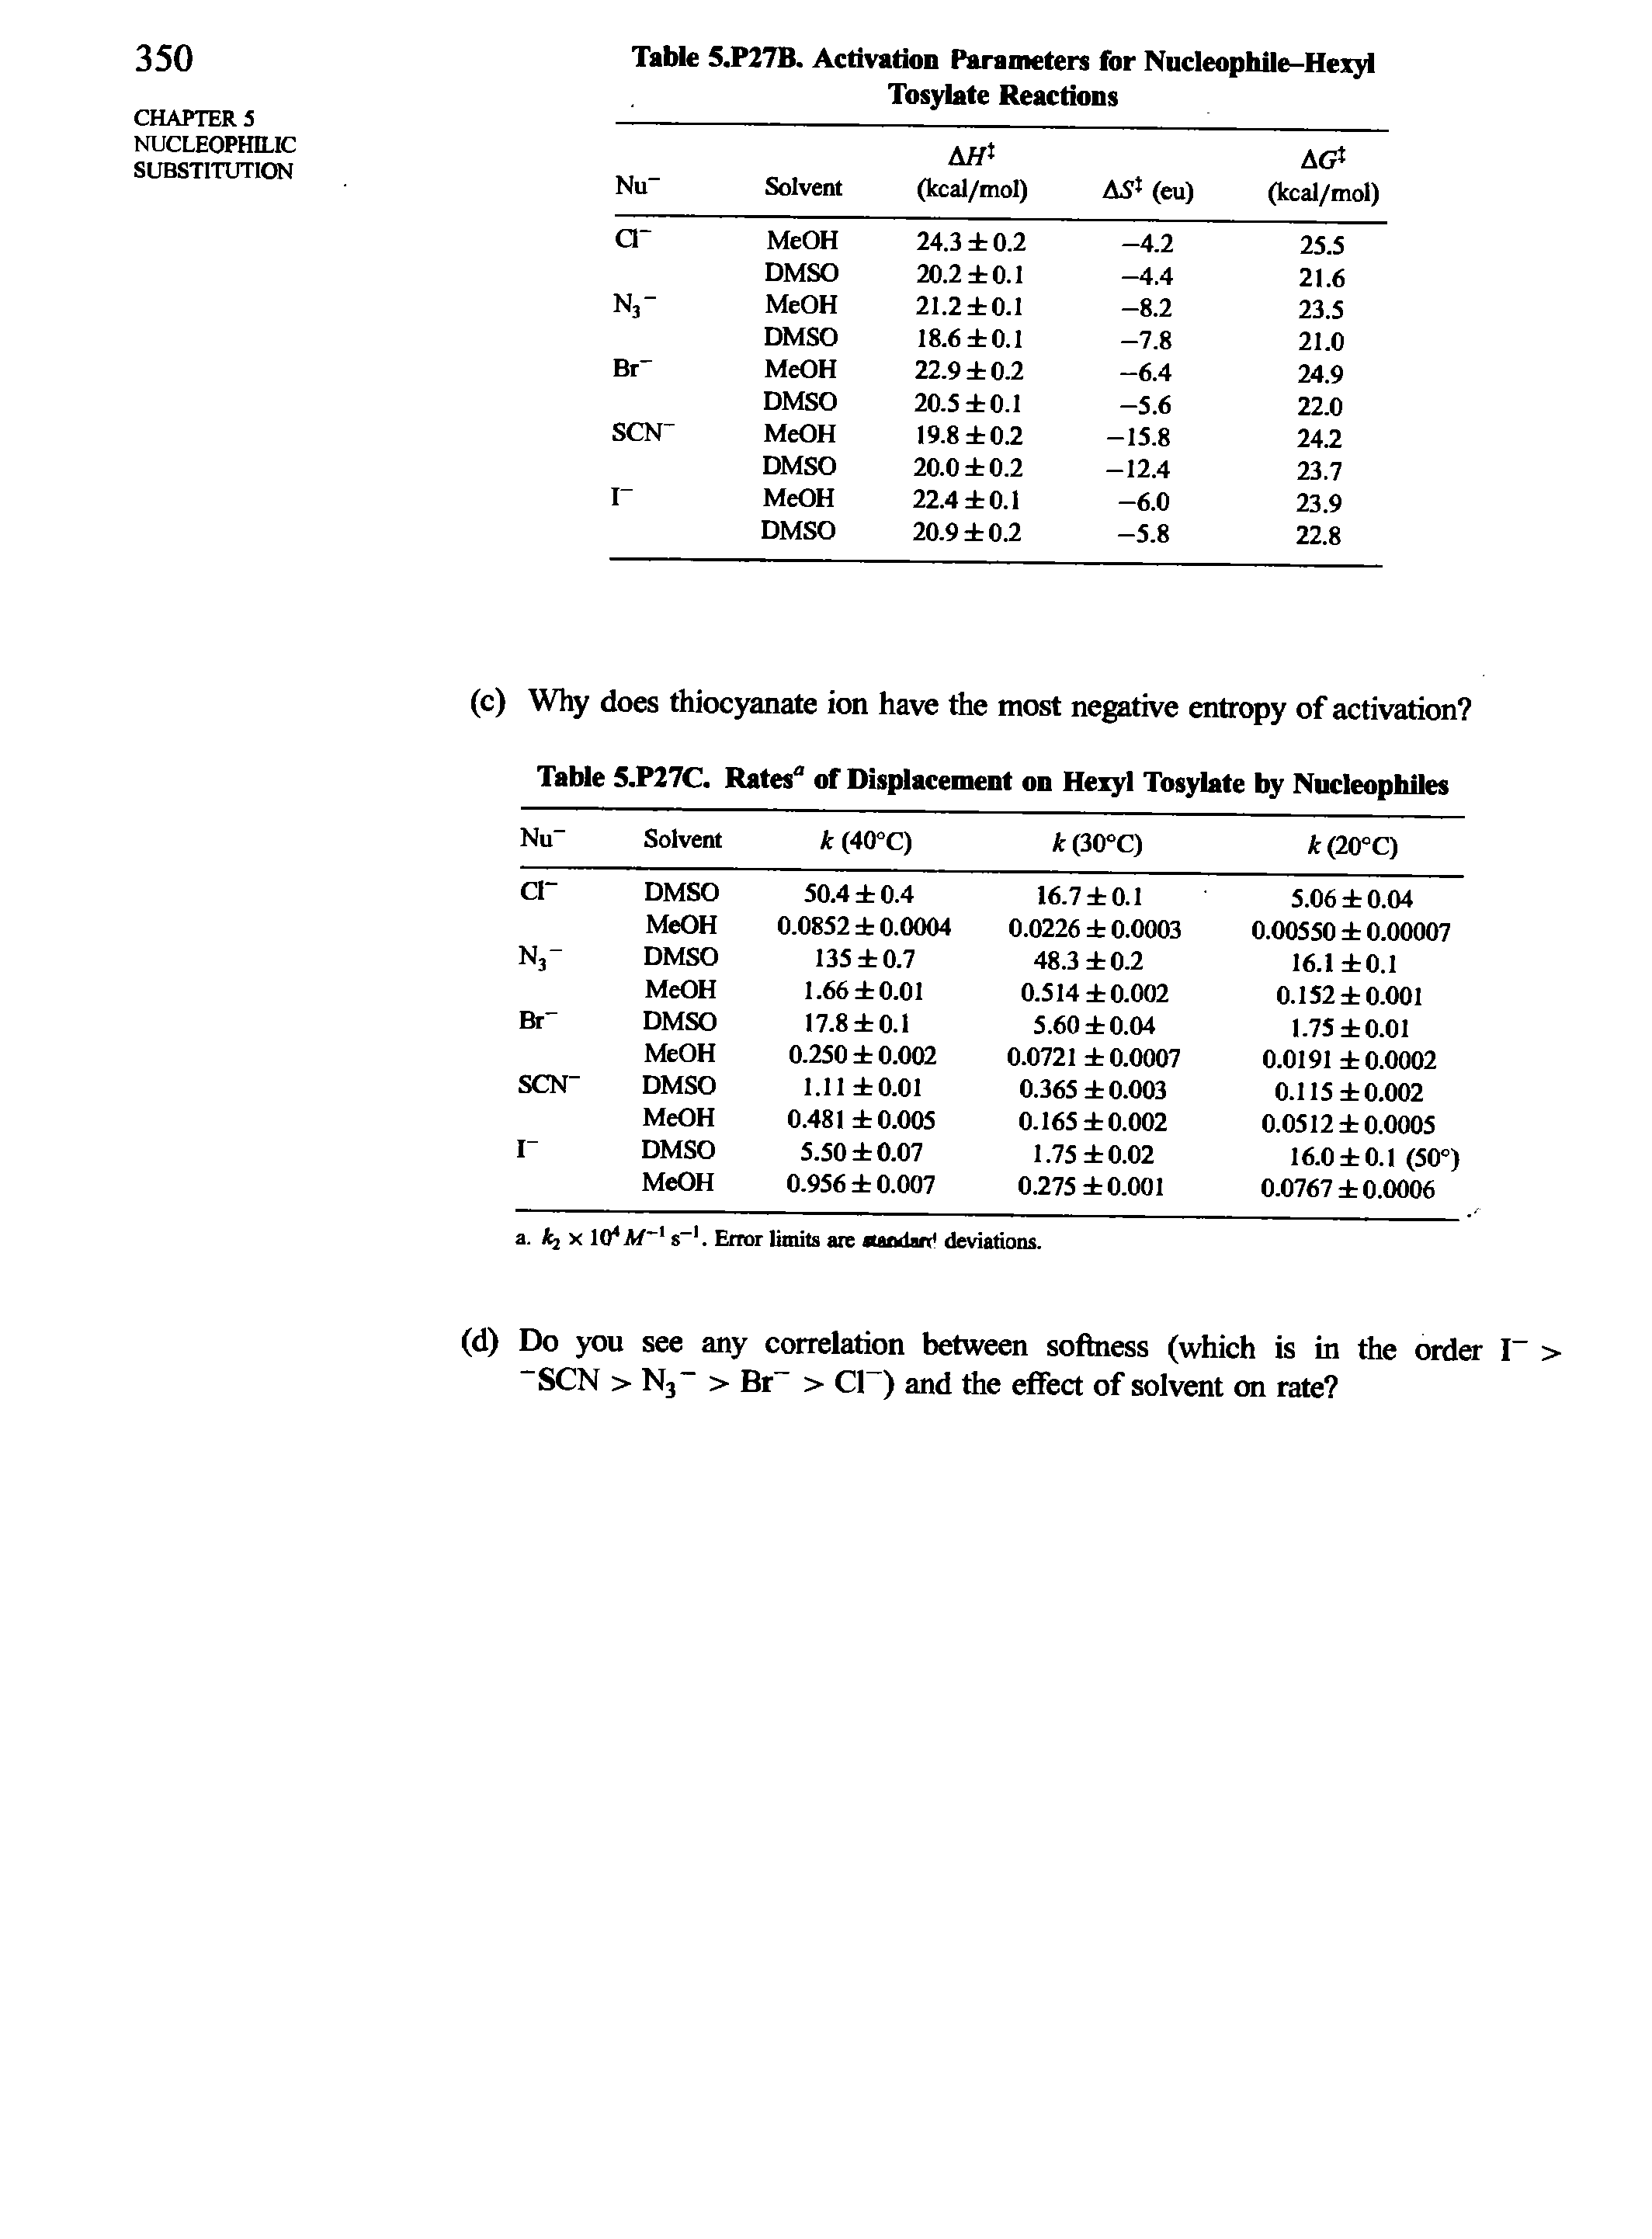 Table 5.P27B. Activation Parameters for Nucleophile-Hexyl Tosylate Reactions